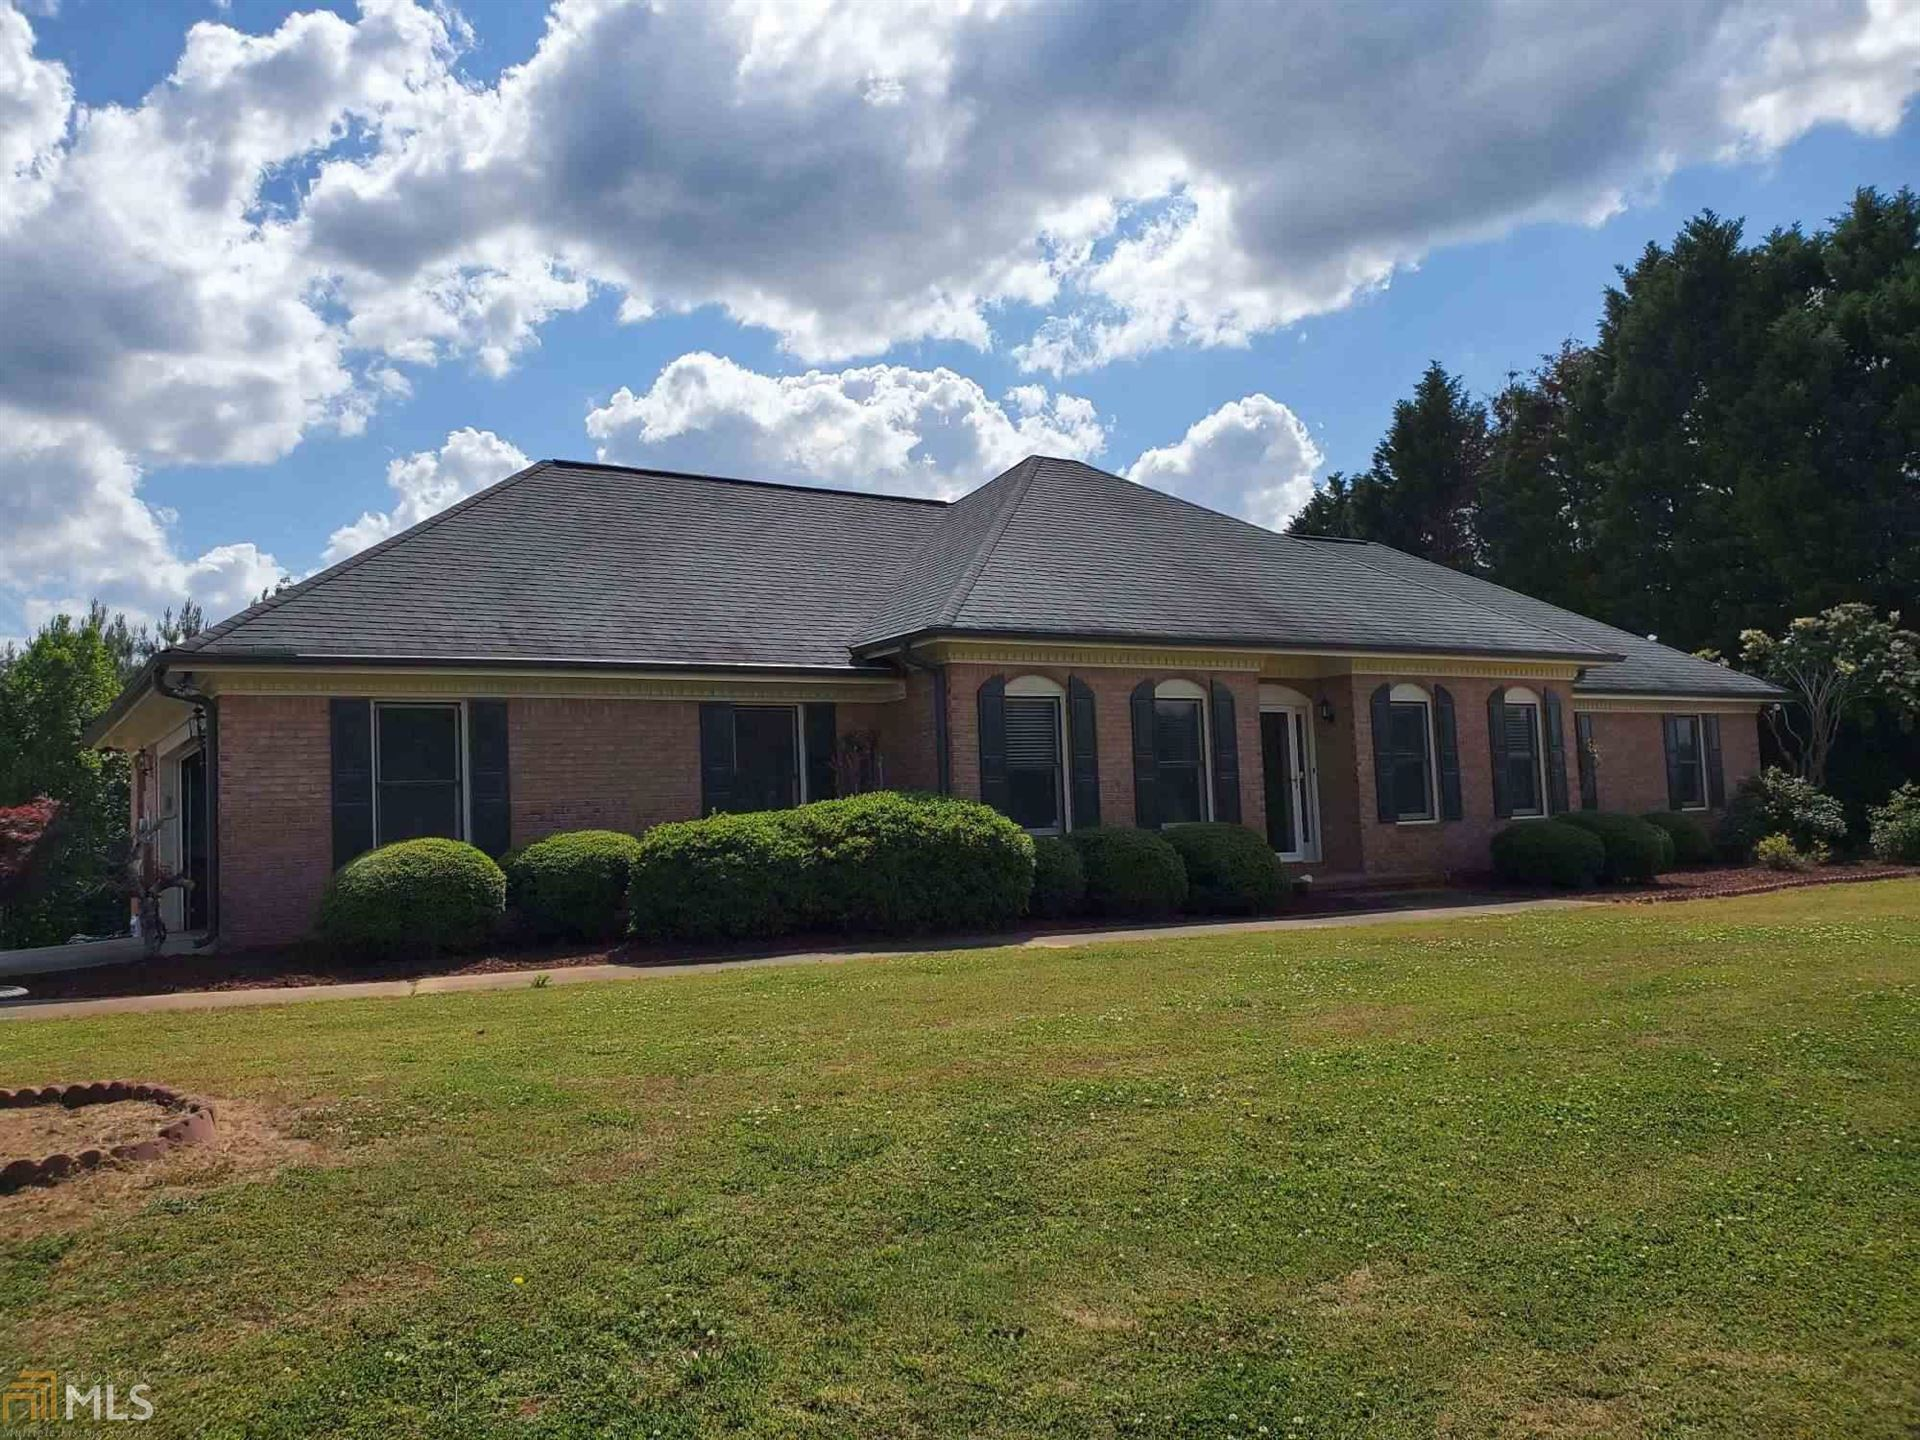 195 W Mill Dr, Stockbridge, GA 30281 - #: 8815171